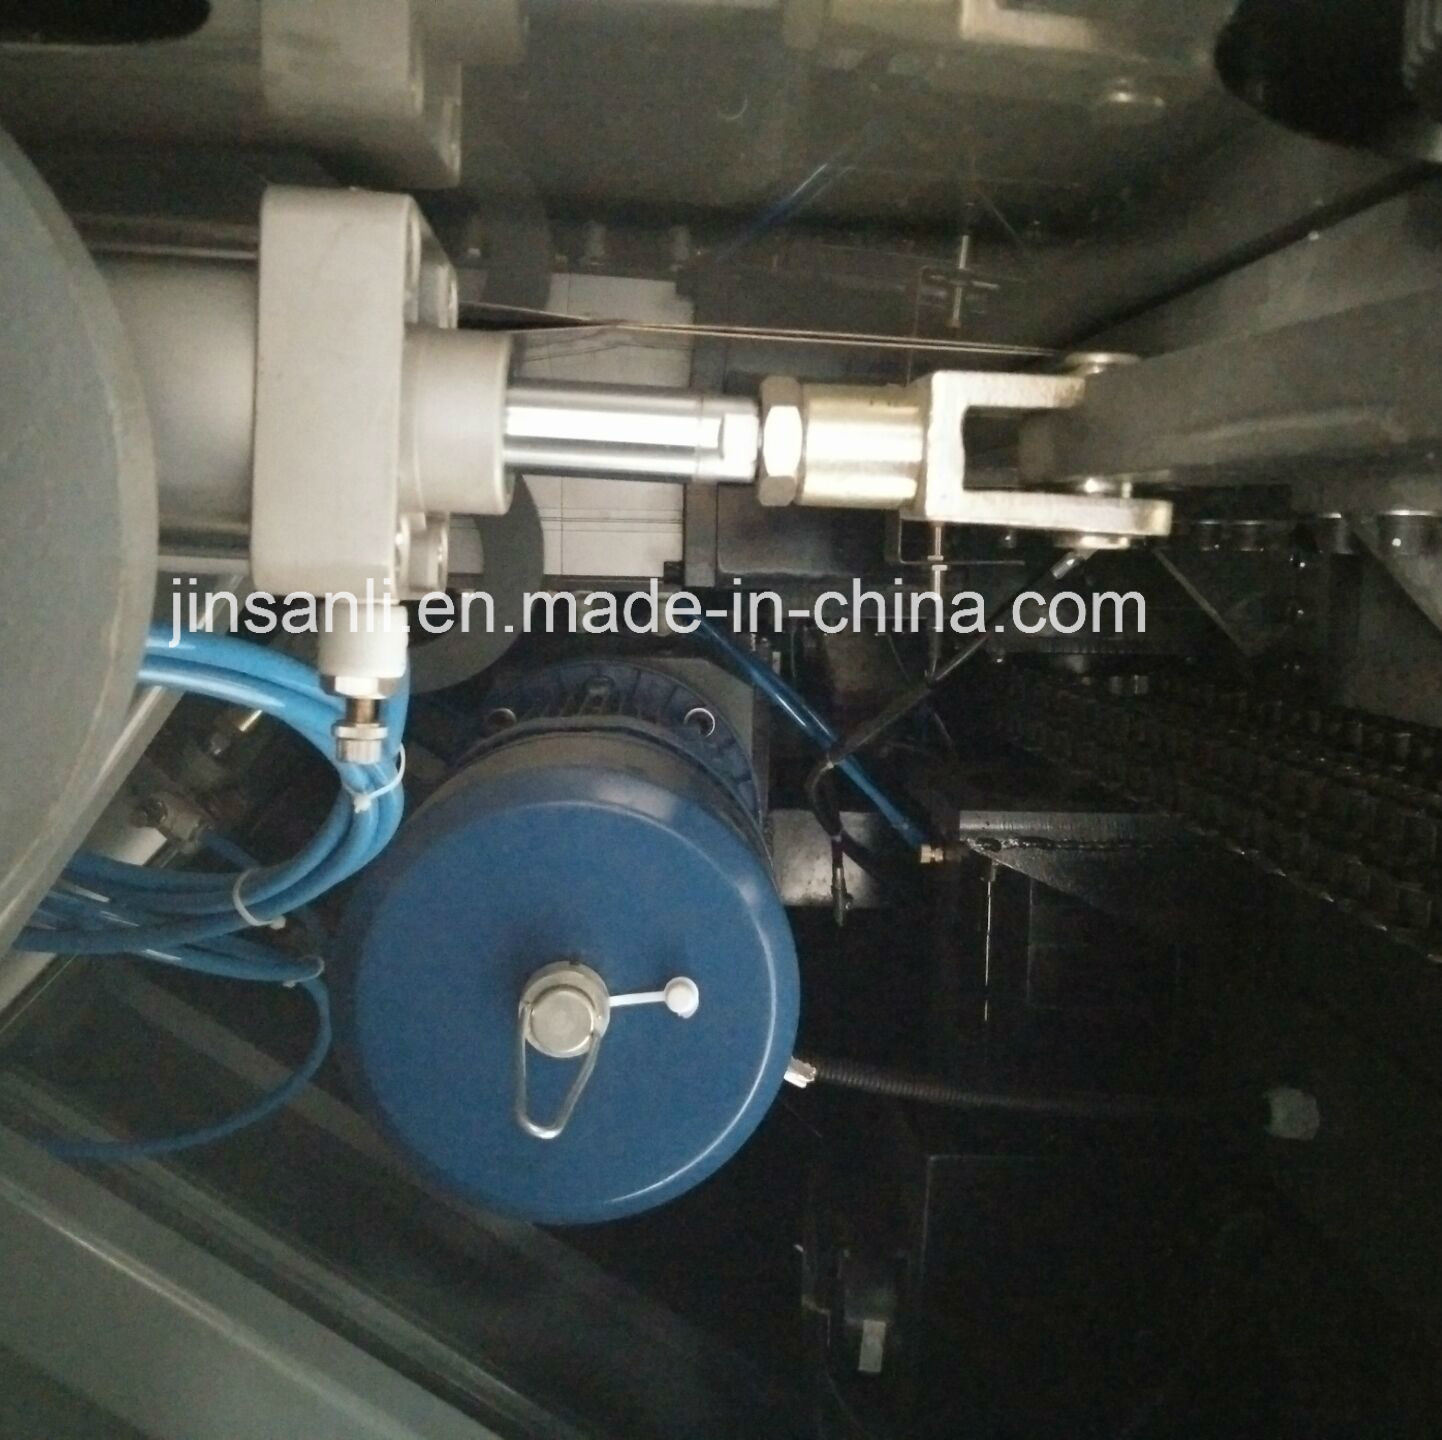 8-Shaped Rebar Forming Molding Machine Used in Tunnel Roadwa pictures & photos